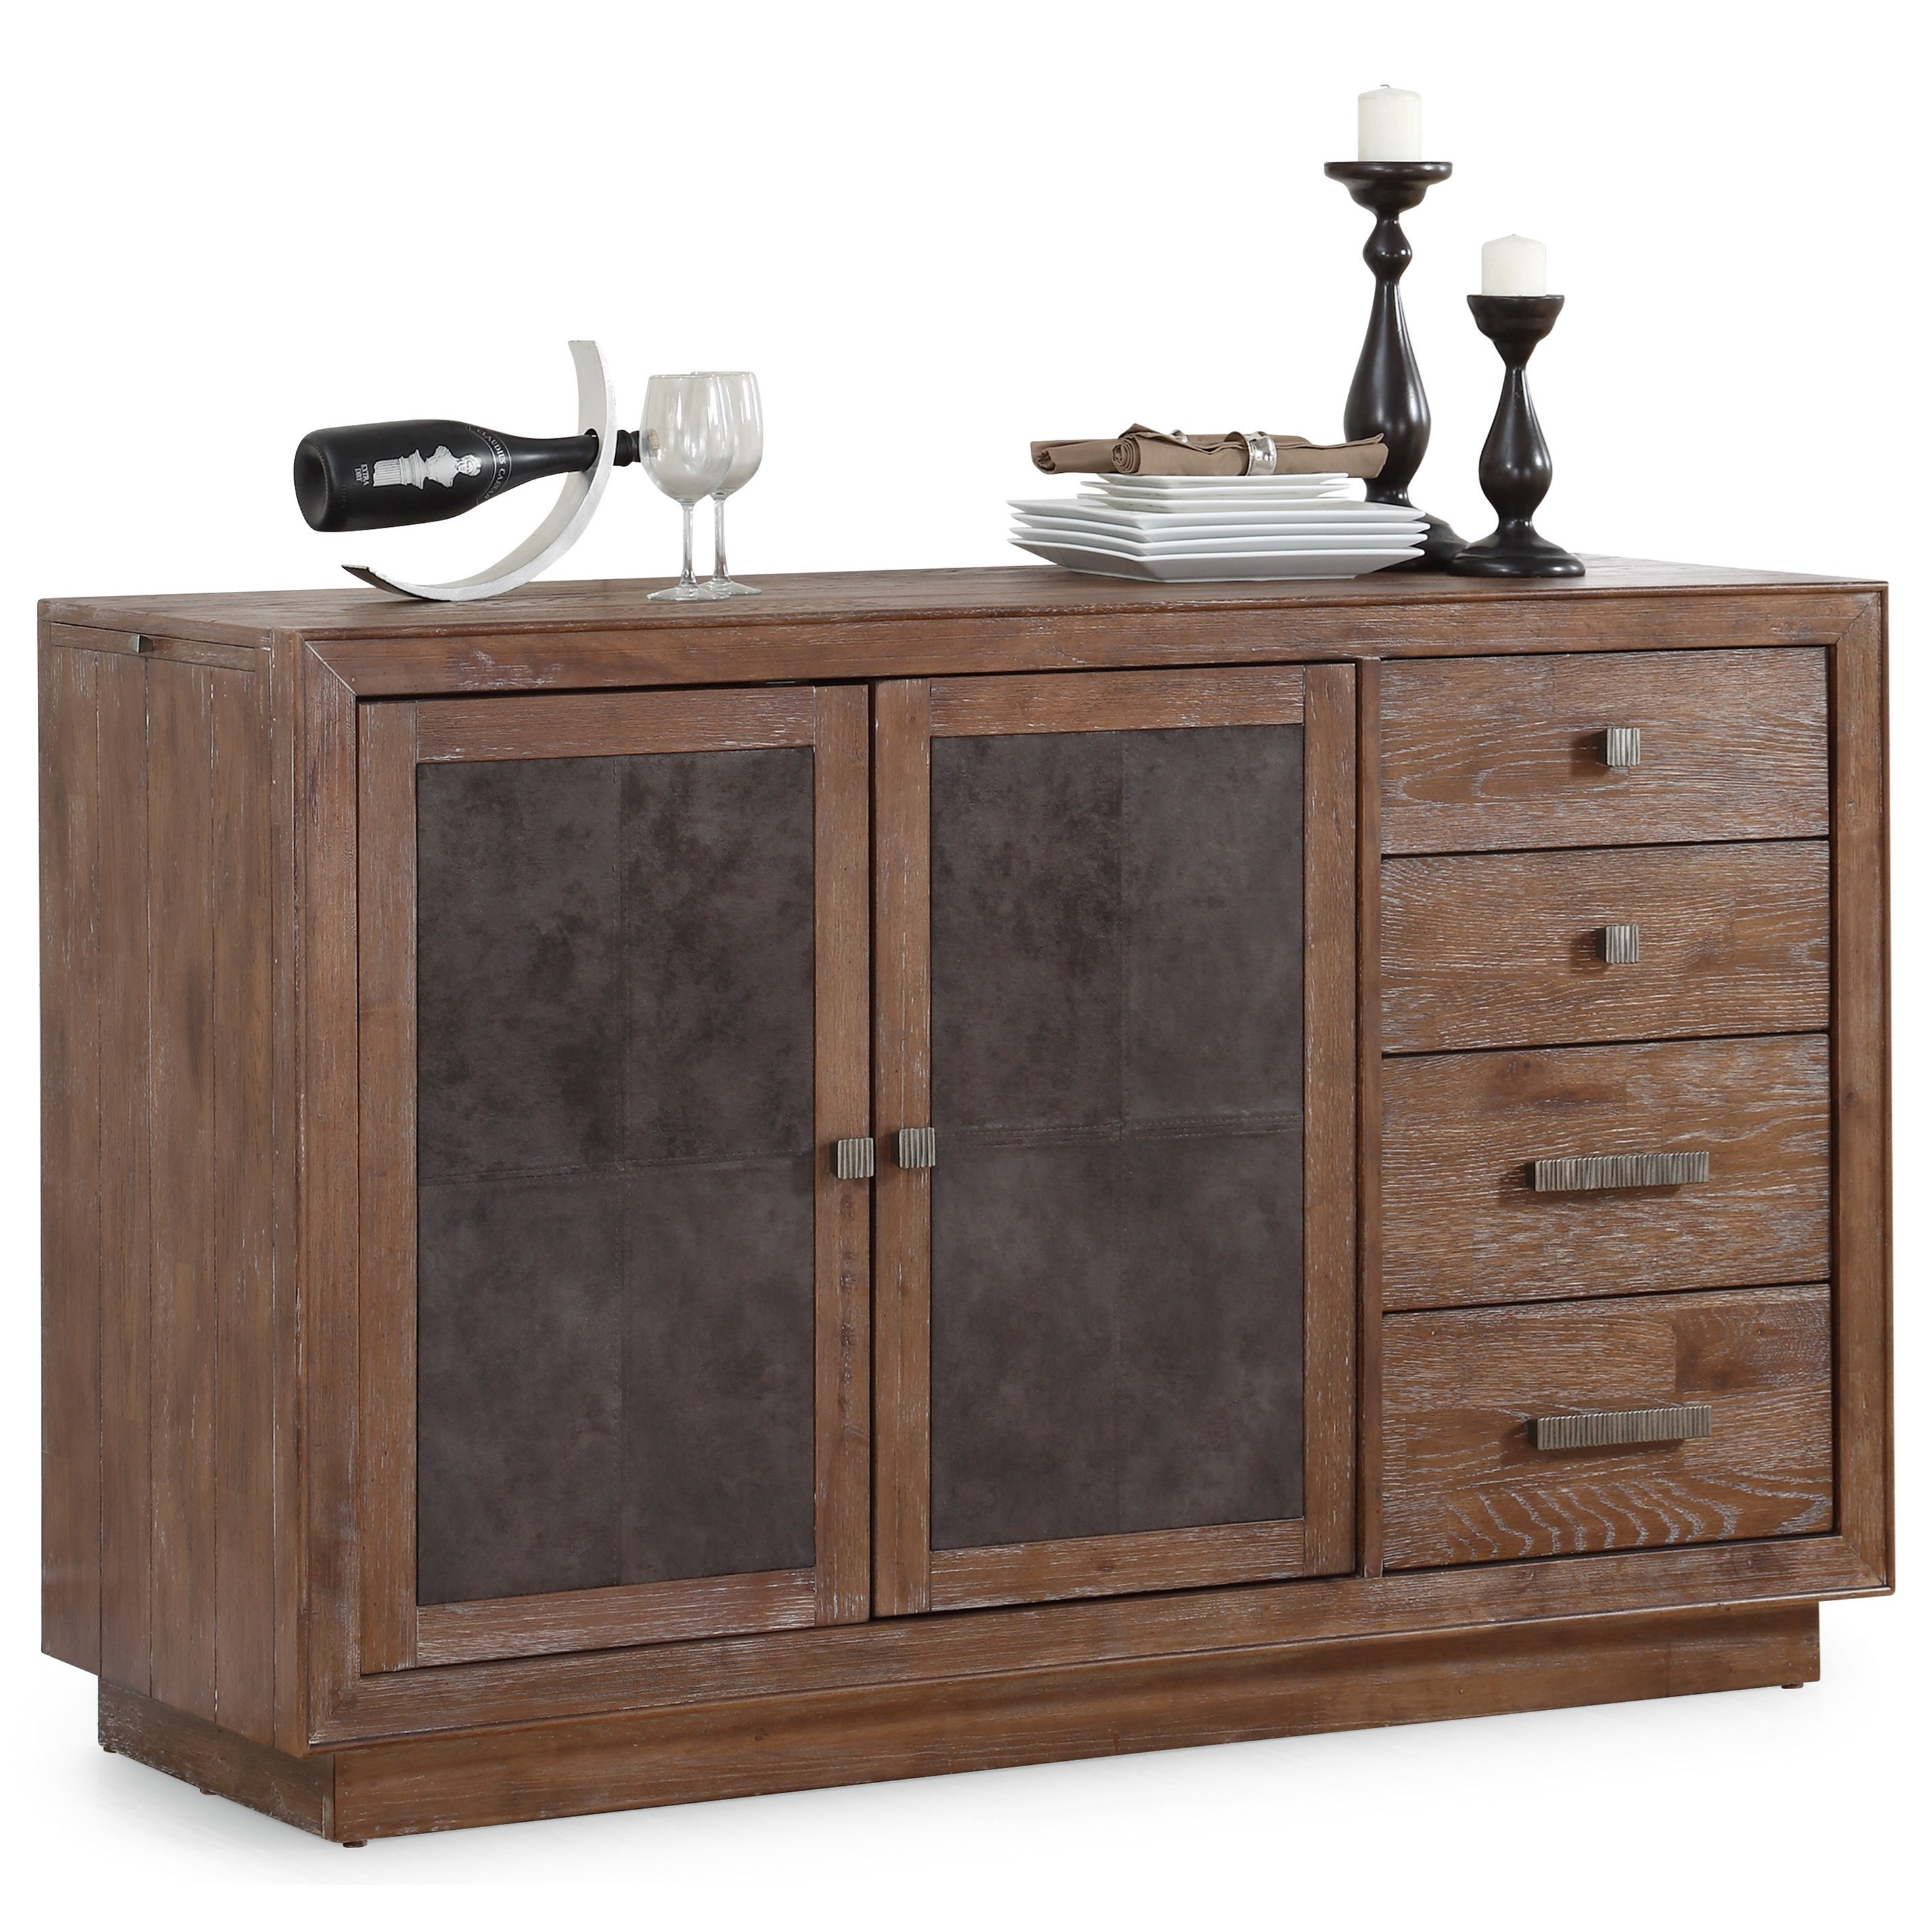 Buffet Sideboard With Wine Rack Flexsteel Wynwood Collection Hampton Dining Group W1148 827 Rustic